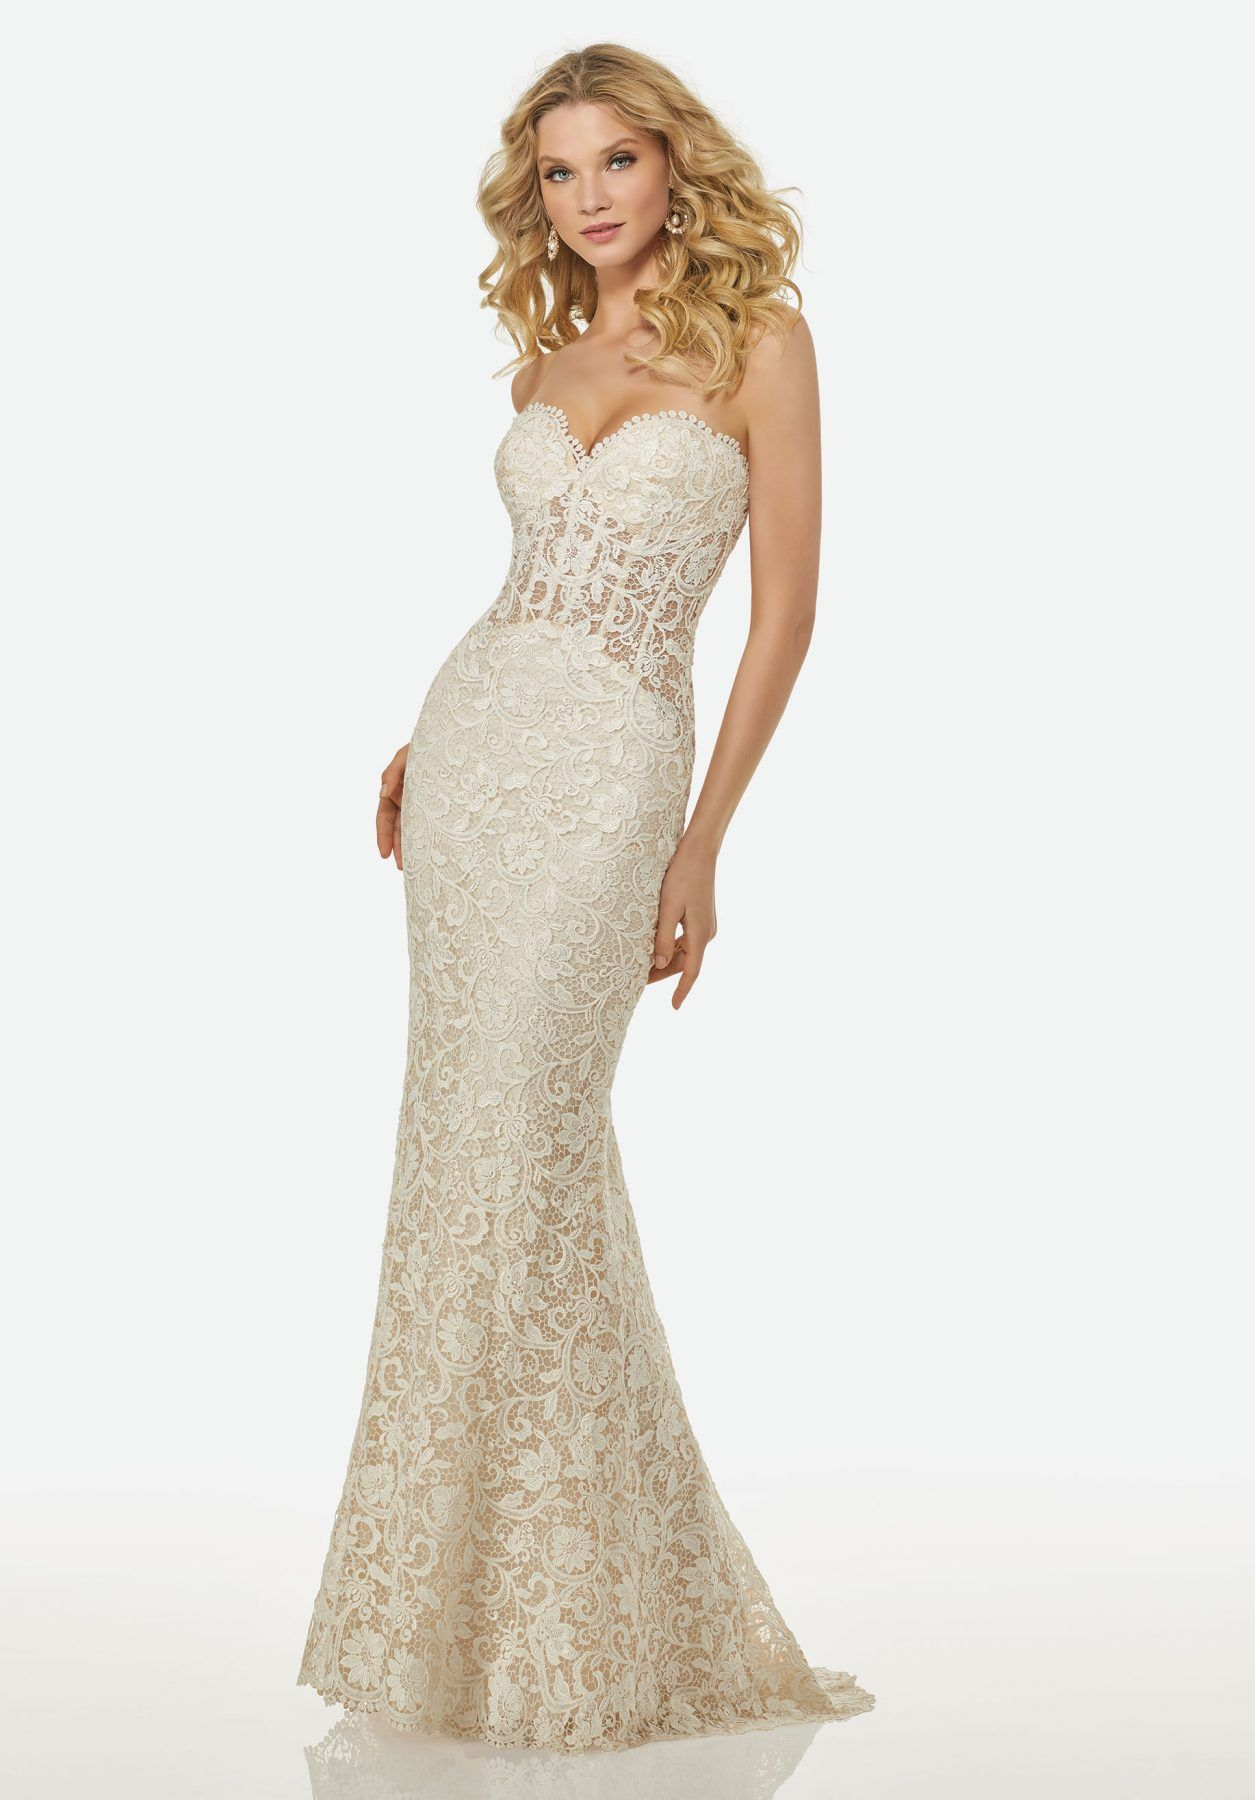 Olivia Dress With Lace Sheer Midriff And Center Back Et Randy Fenoli Style R3403